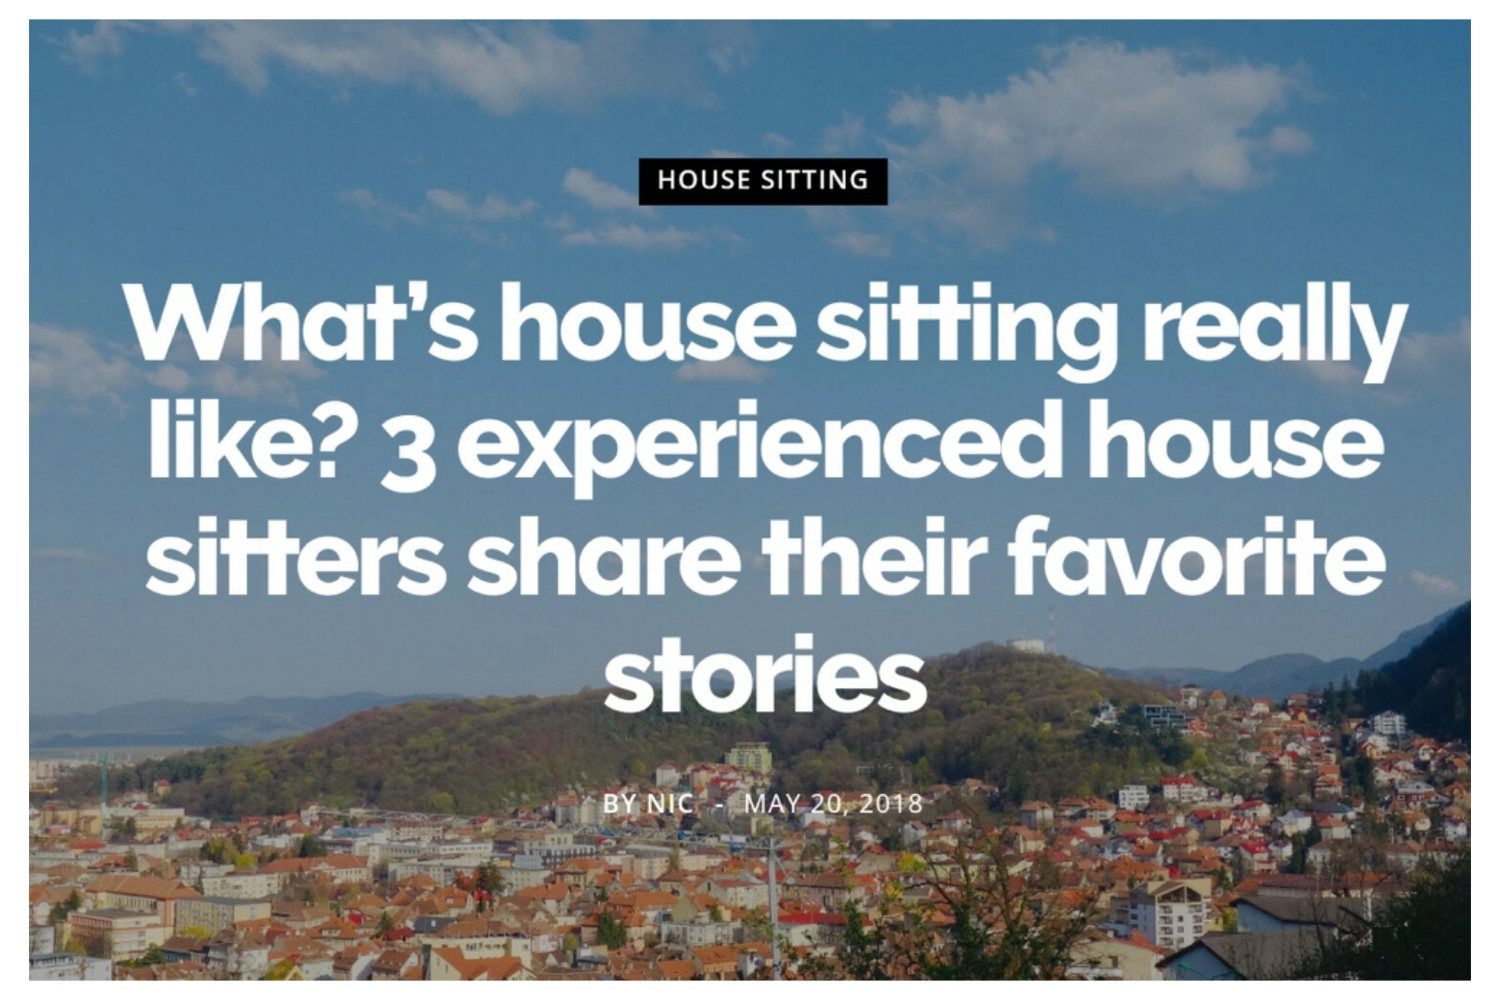 See Nic Wander - What's House Sitting really like